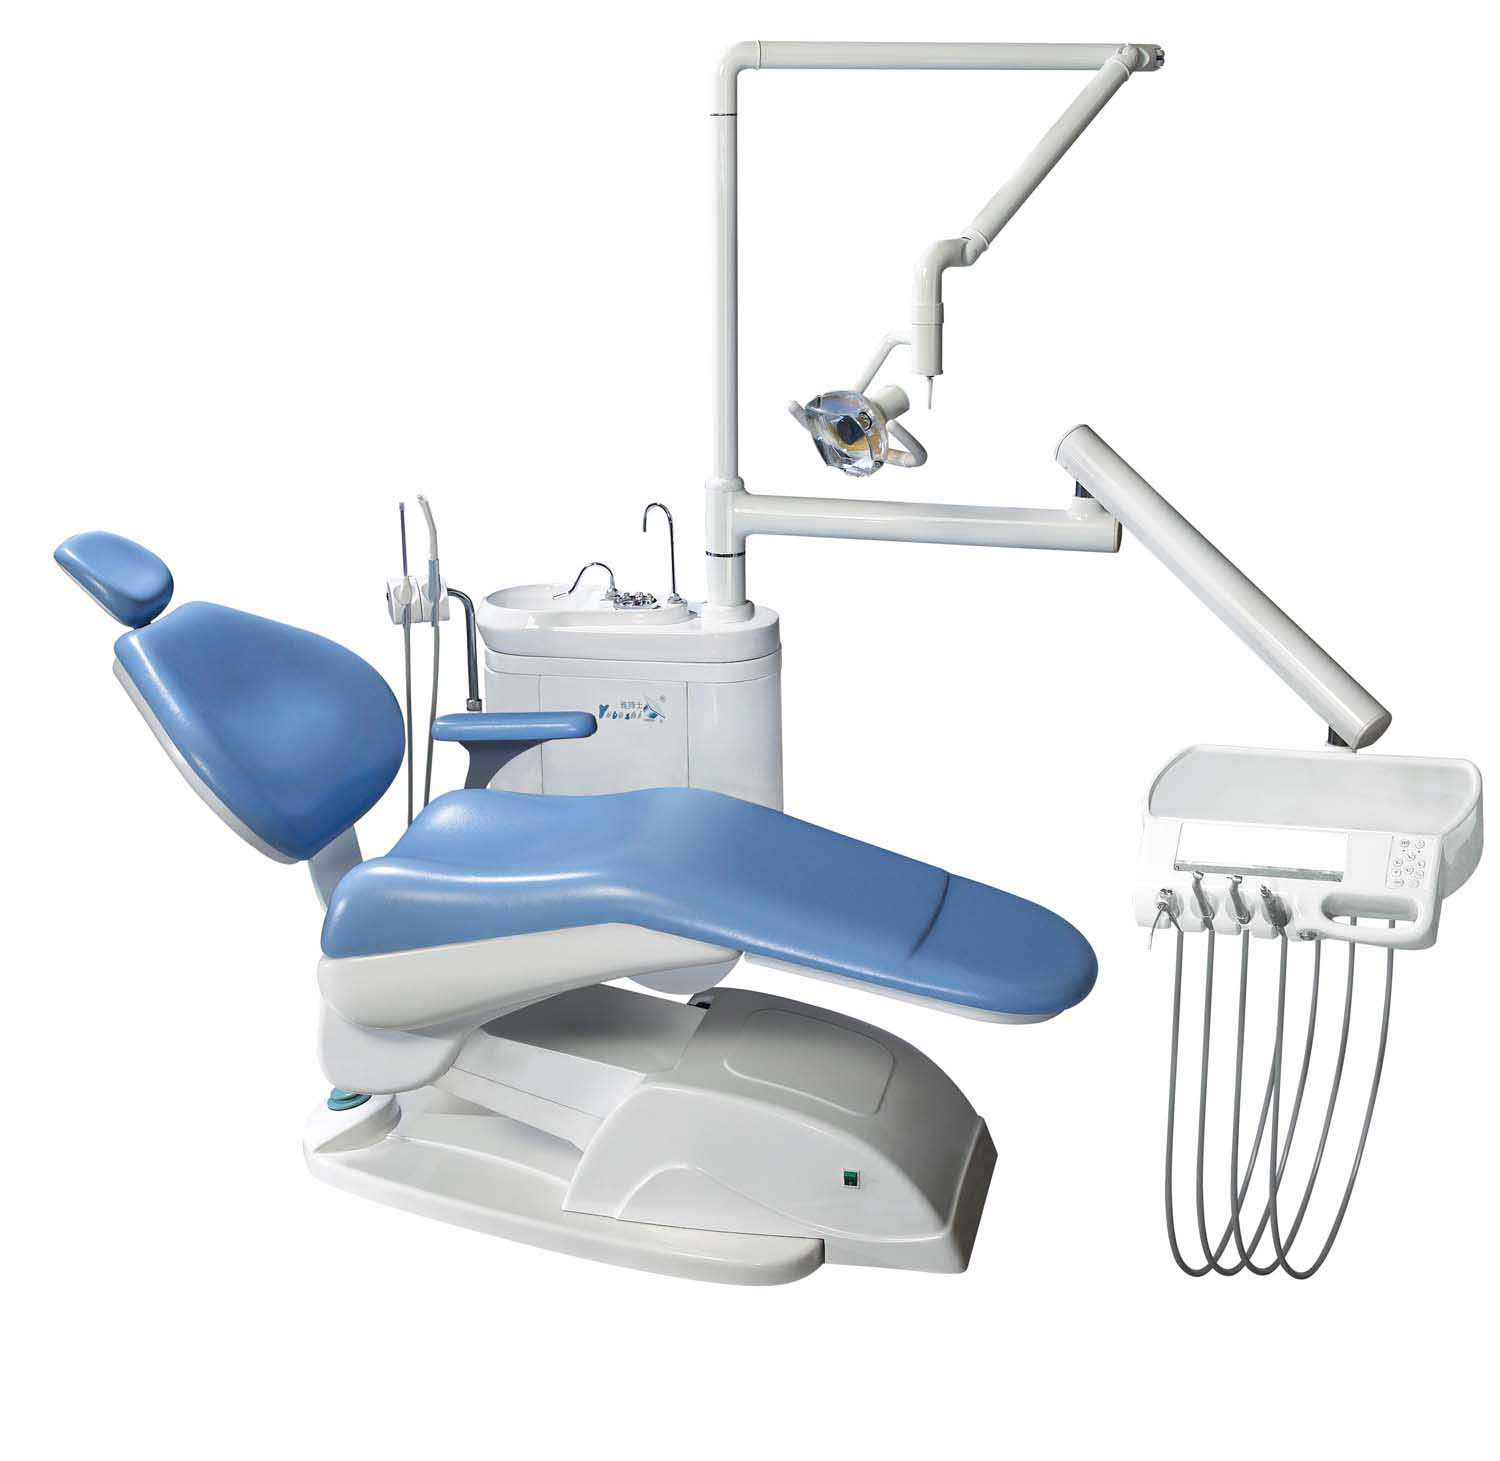 dentist-chair1.jpg